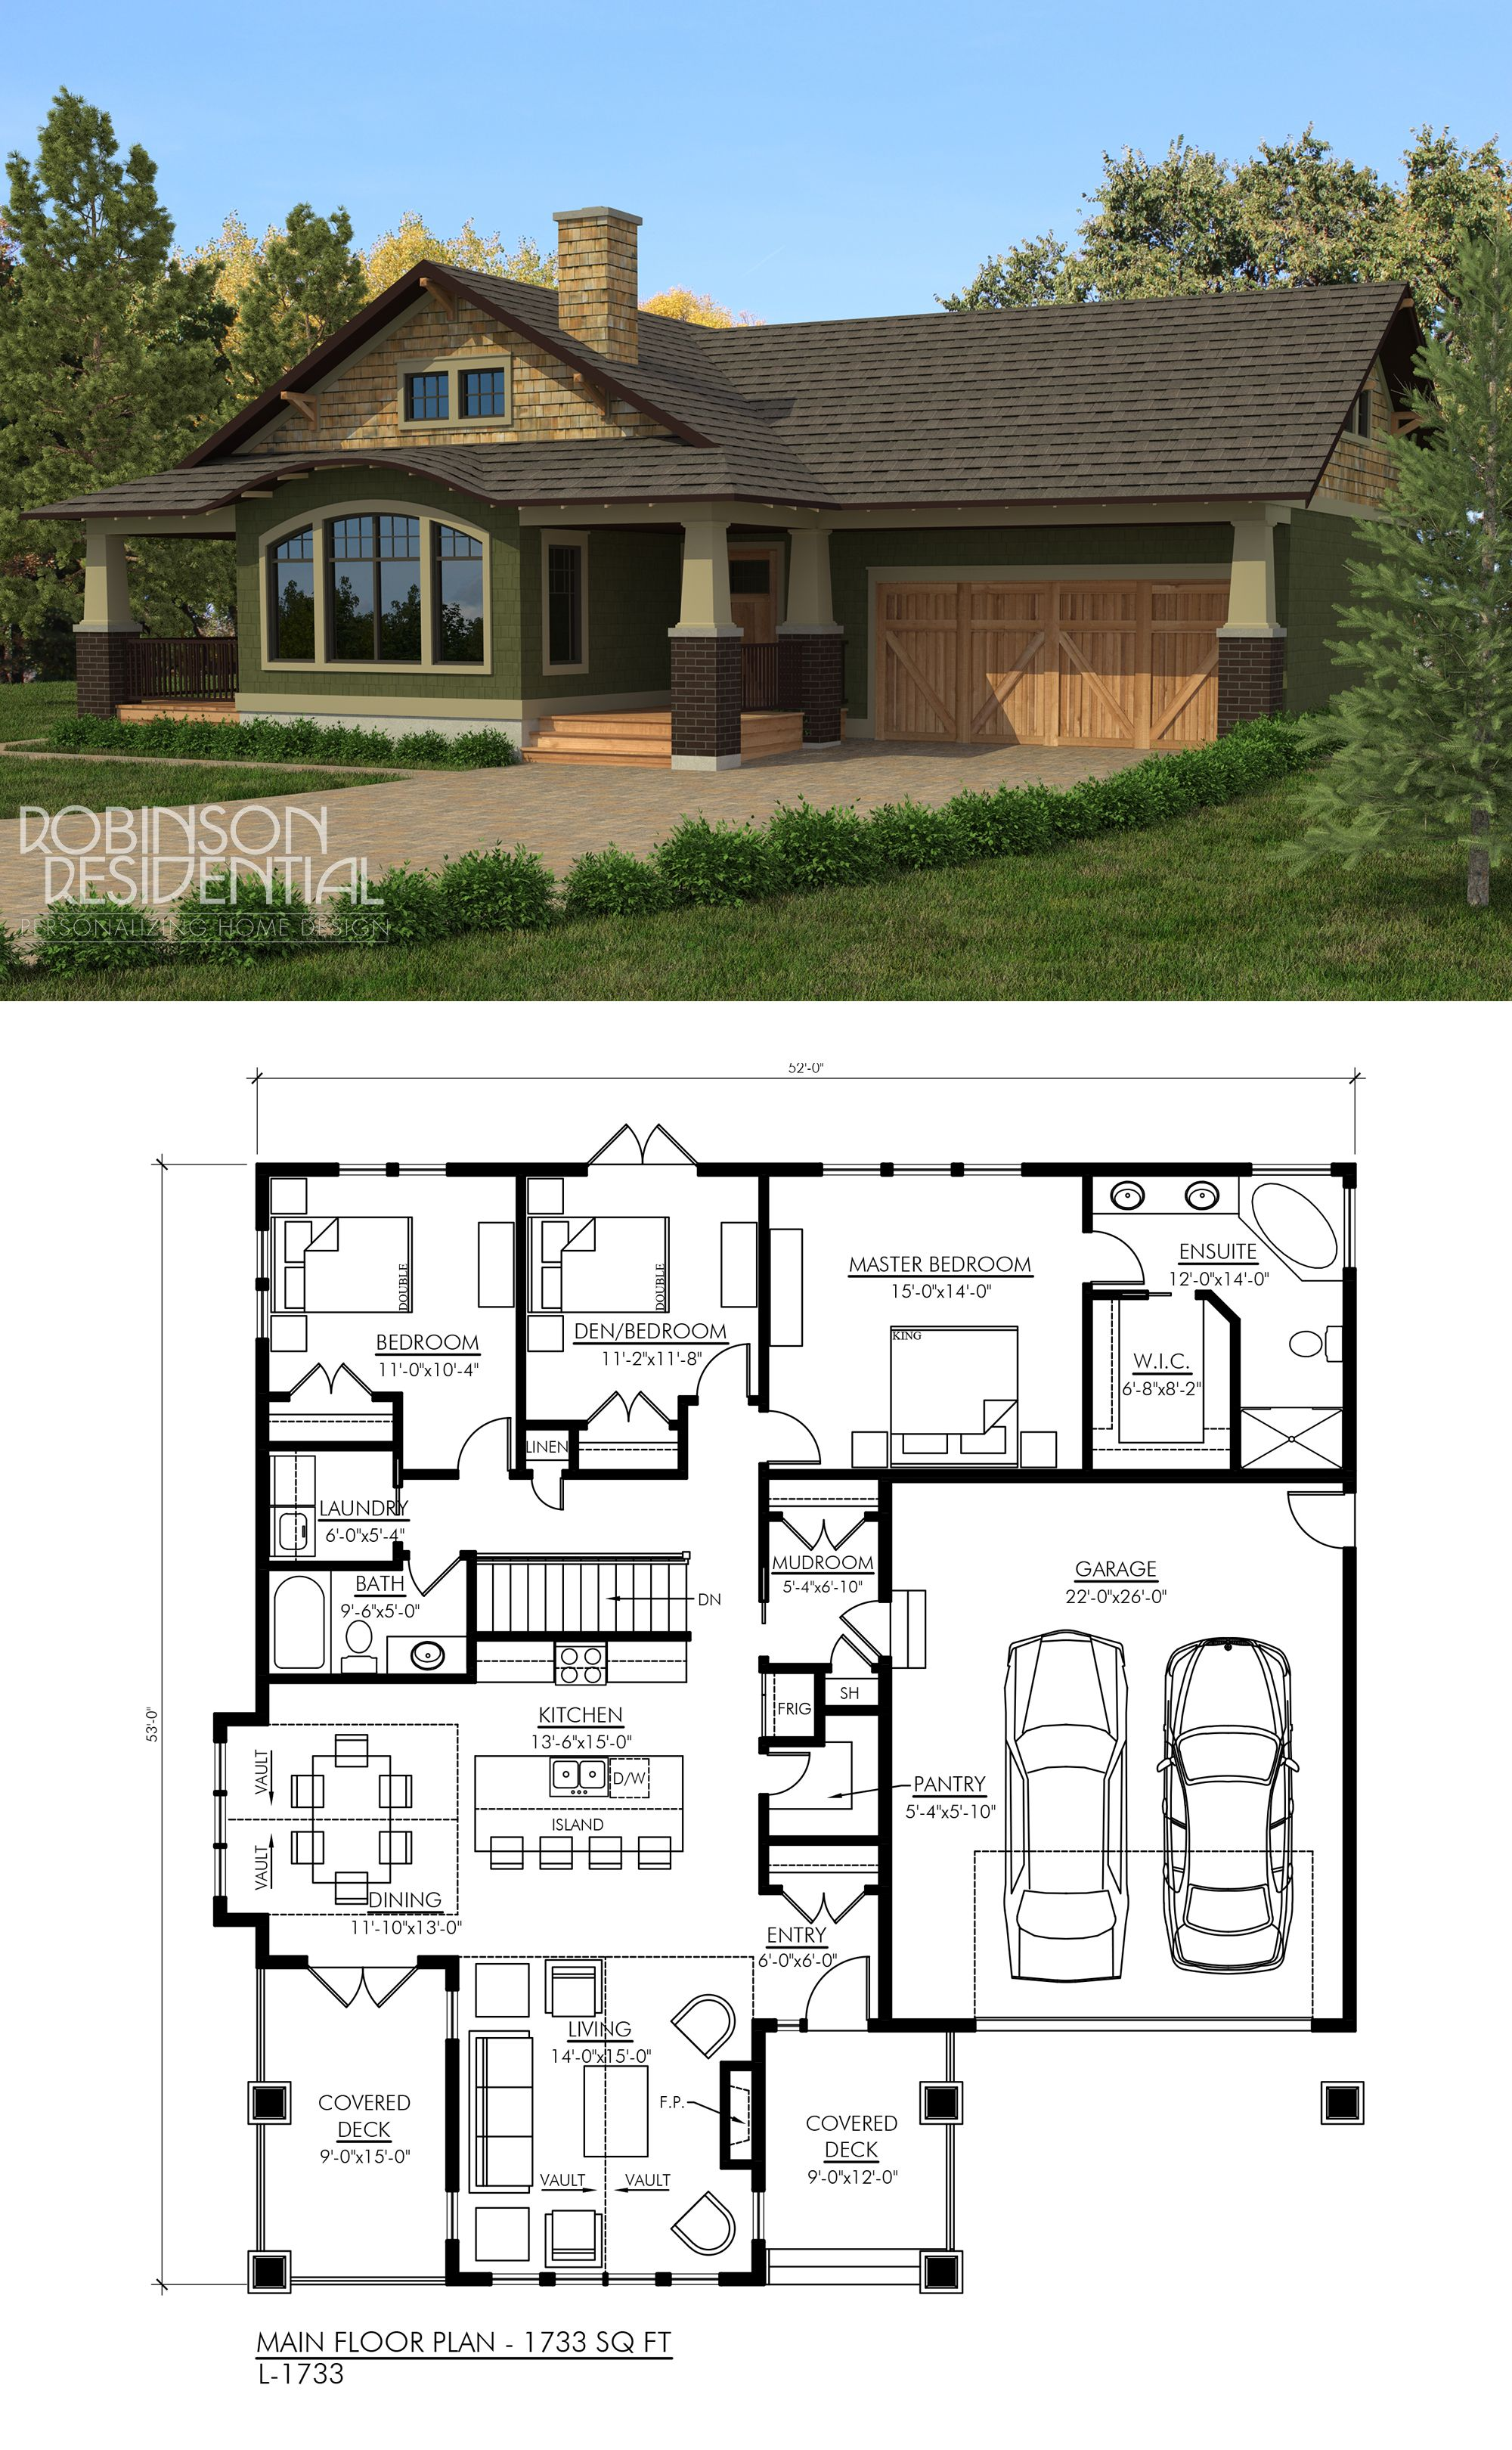 Craftsman Style House Plan 3 Beds 2 5 Baths 2303 Sq Ft Plan 1067 2 In 2020 Dream House Plans Craftsman Style House Plans Craftsman House Plans